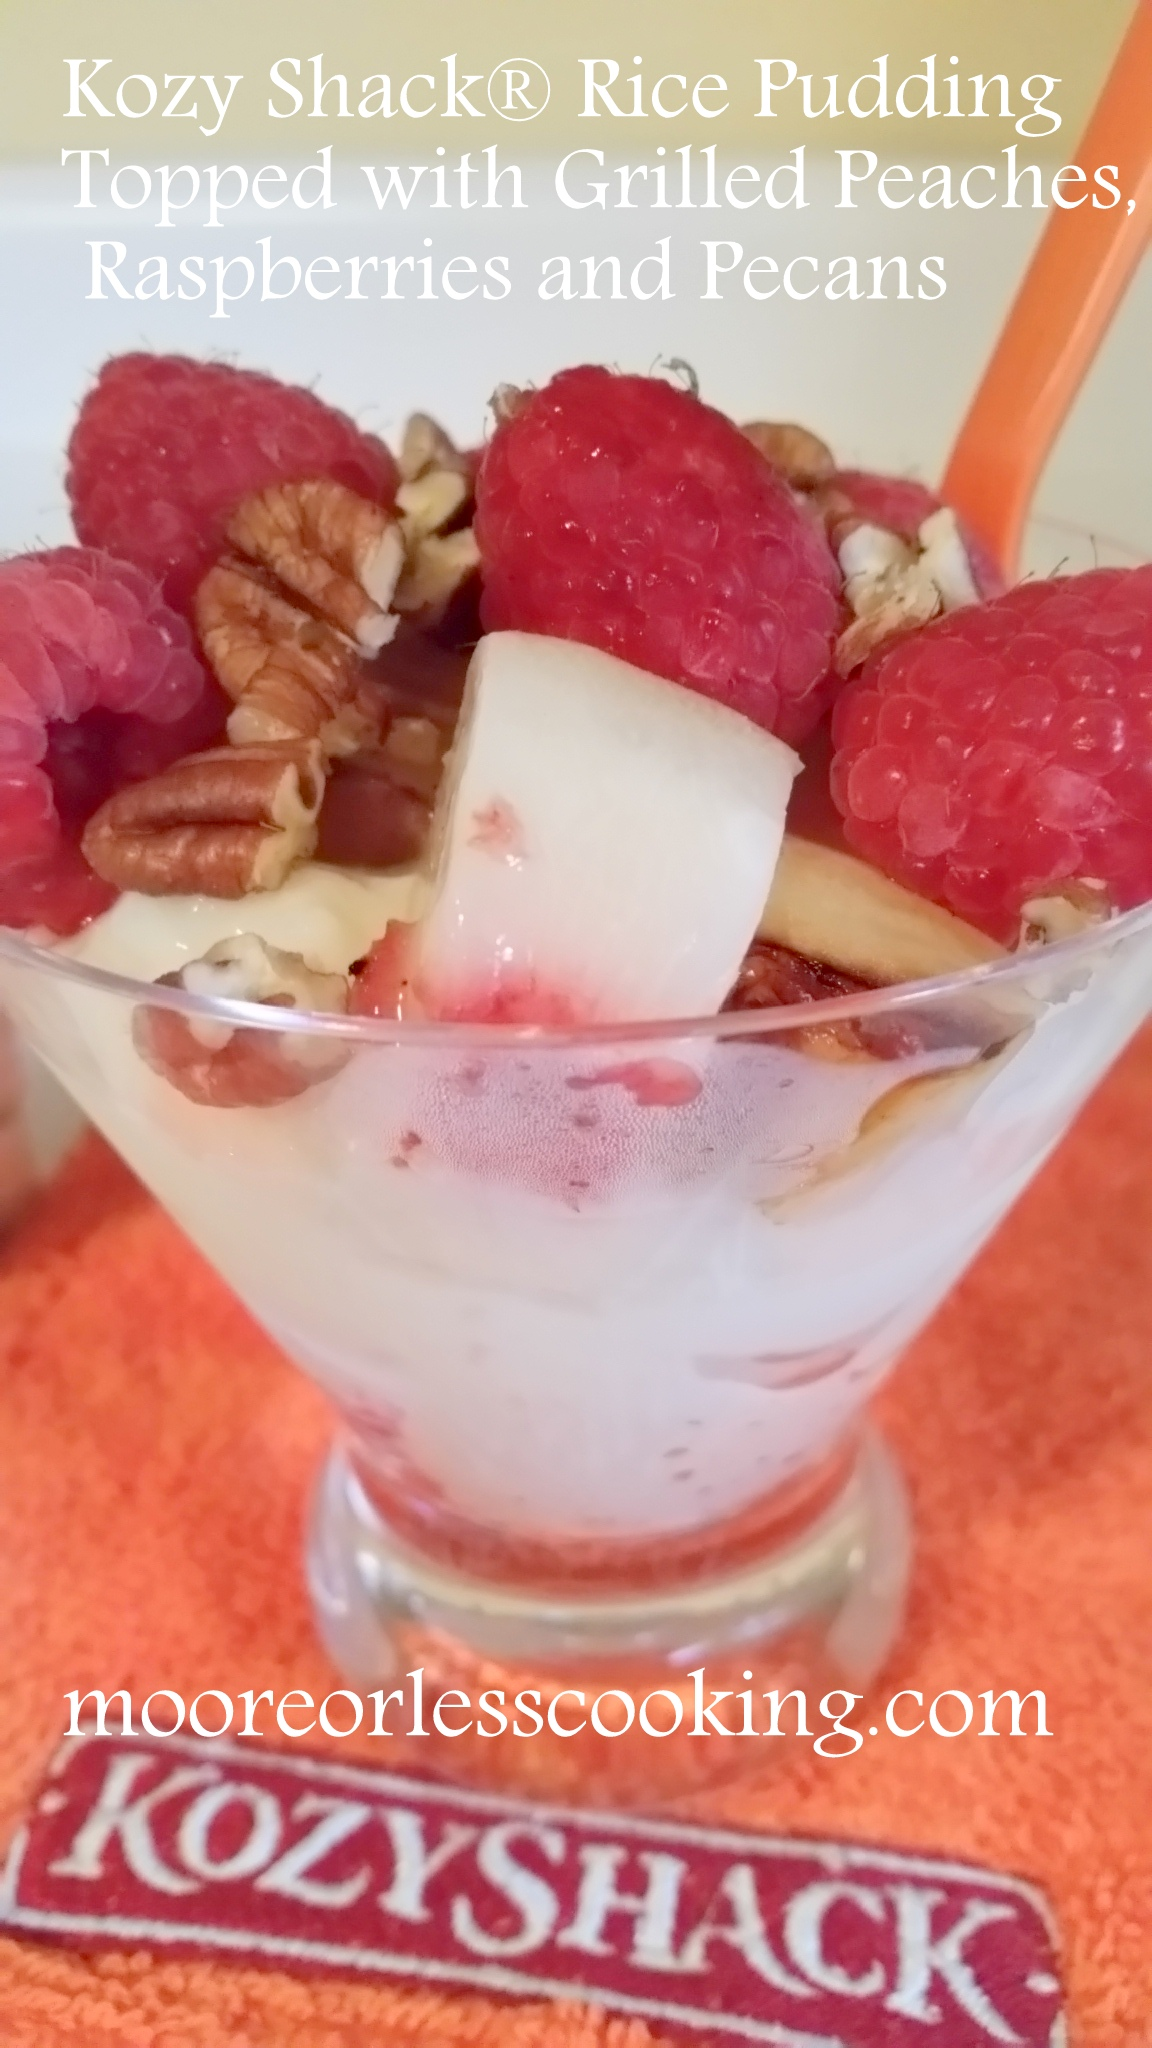 Kozyshack Rice Pudding Topped with Grilled Peaches, Raspberries and Pecans